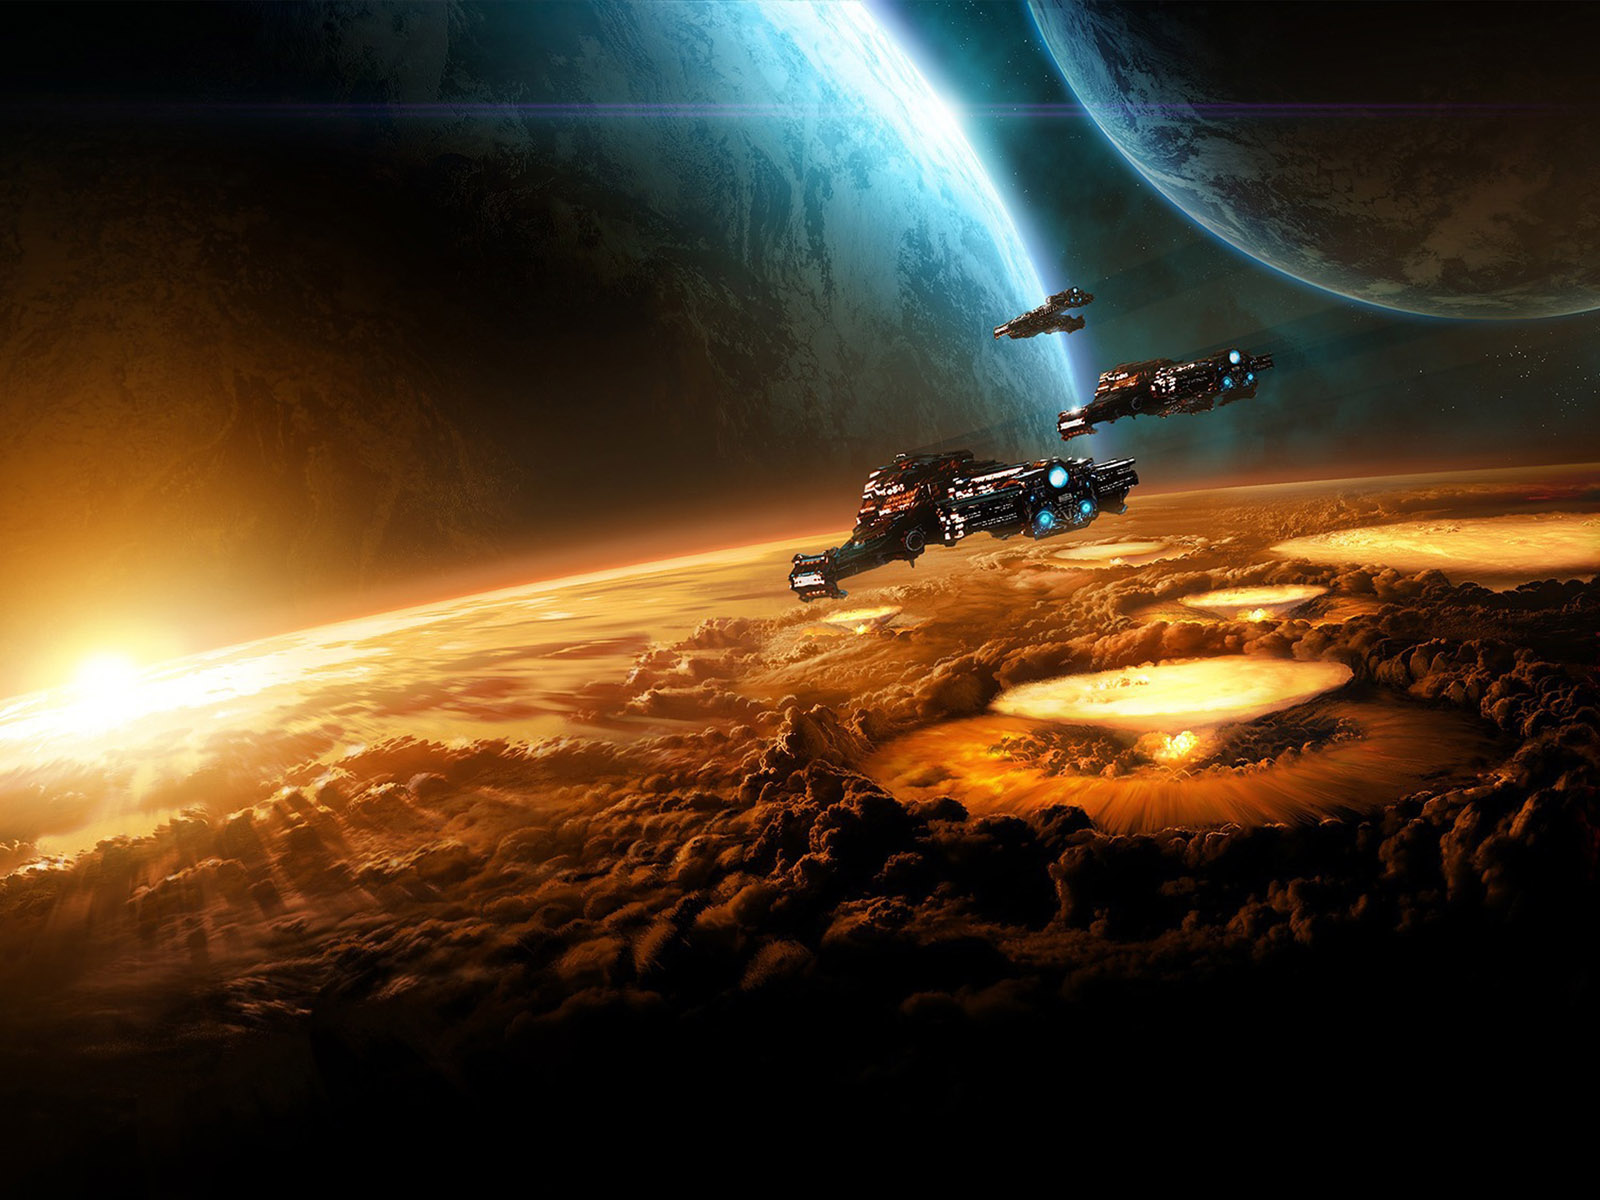 Download High quality sun rise Science Fiction Sci fi Wallpaper 1600x1200